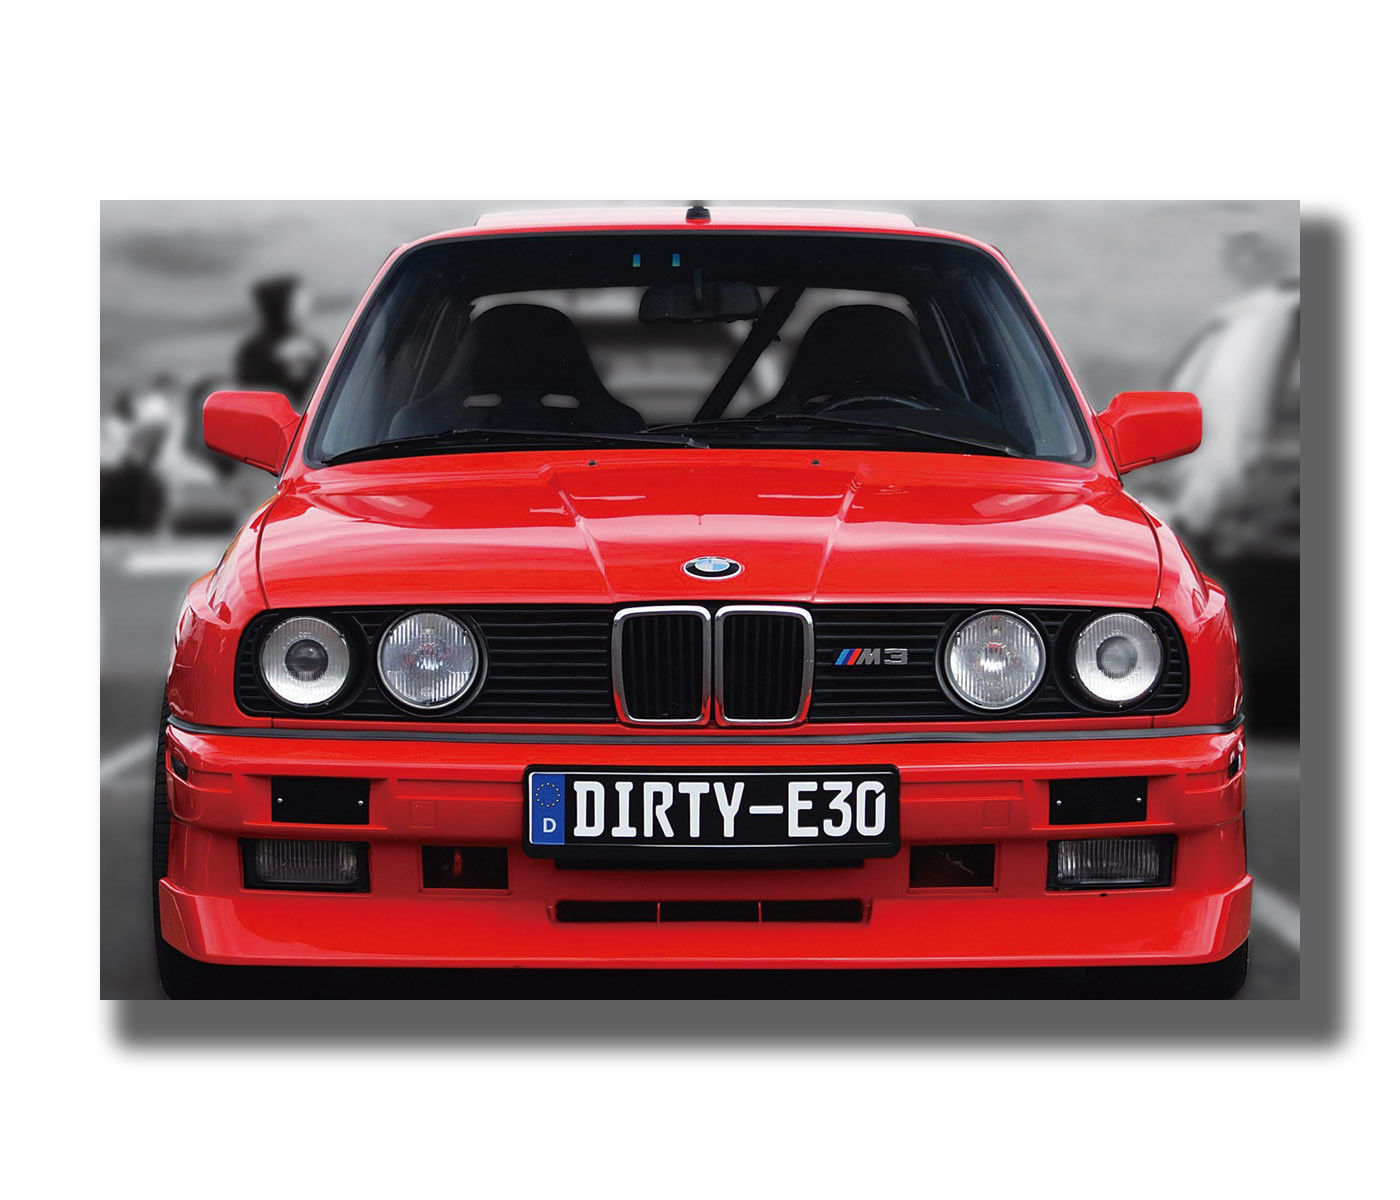 Girdss Carteles E Impresiones Cool Custom Bmw M3 E30 Series Super Racing Car Custom Art Poster Canvas Painting 50x70cm Sin Marco Lienzos Costura Y Manualidades